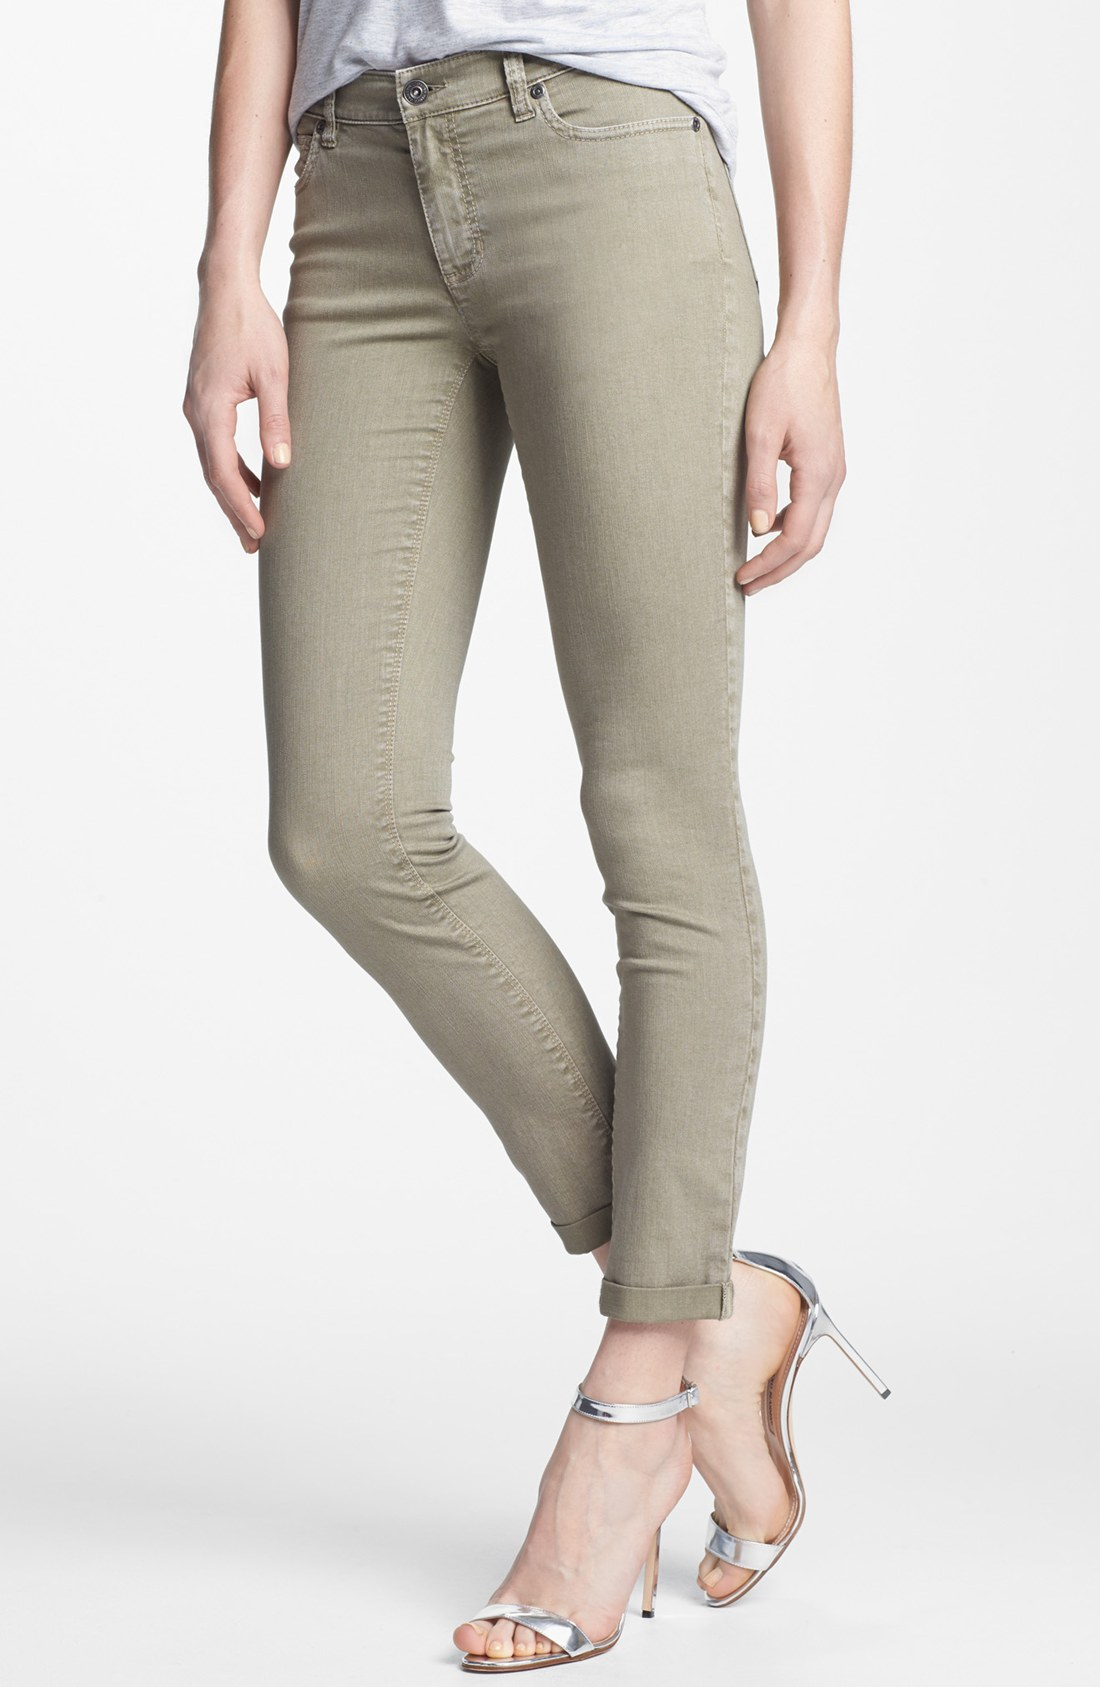 Enjoy free shipping and easy returns every day at Kohl's. Find great deals on Petite Jeans at Kohl's today!